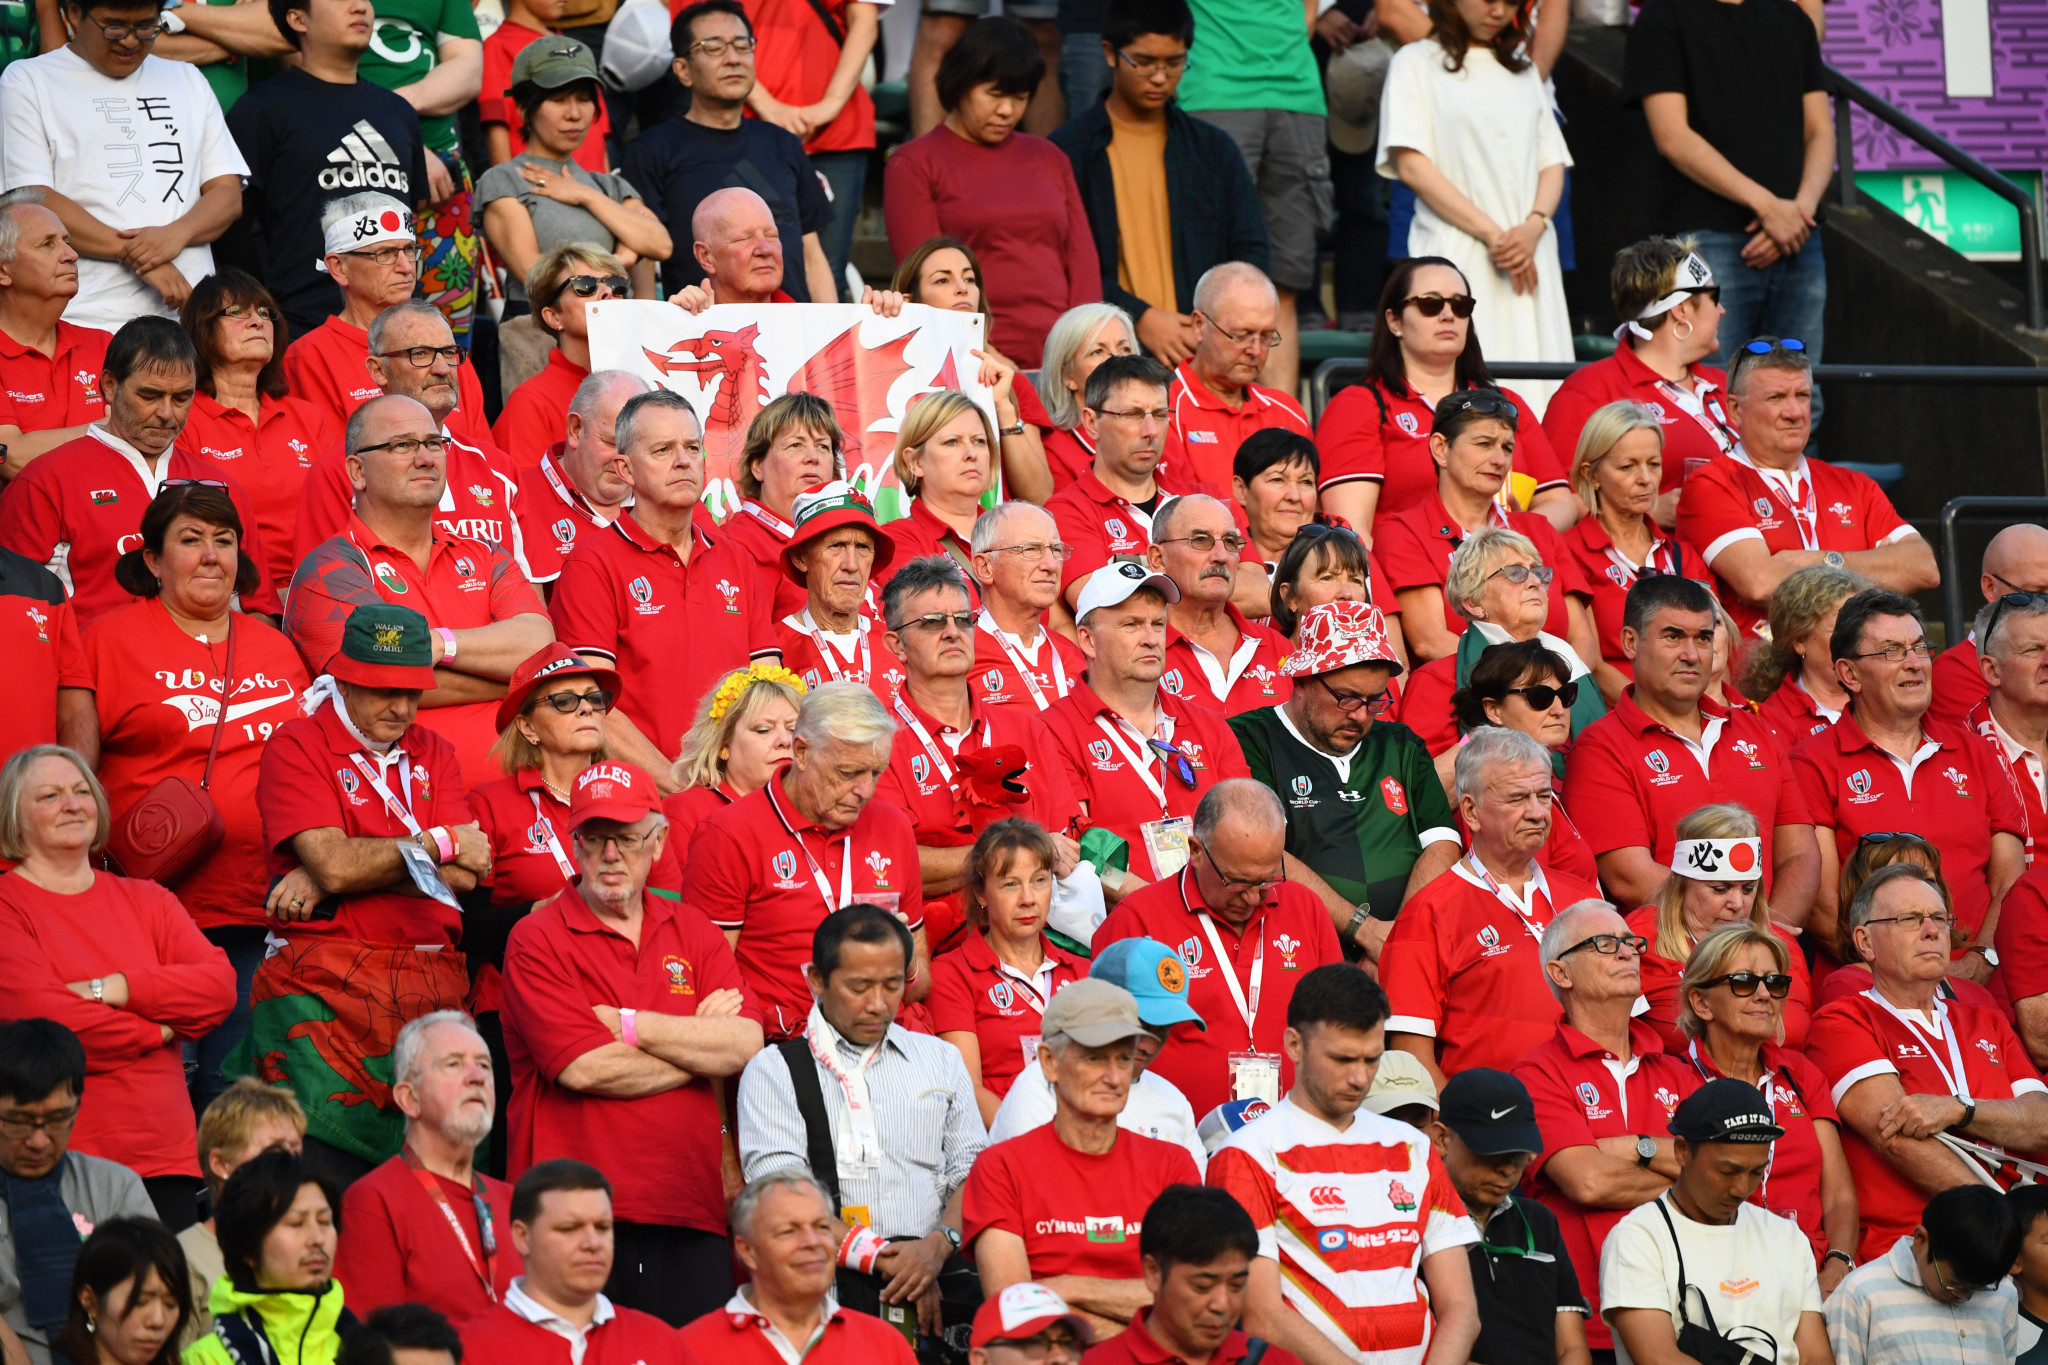 Wales fans observe a moment of silence for victims of Typhoon Hagibis, which has killed 18 people in Japan over the weekend ©Getty Images